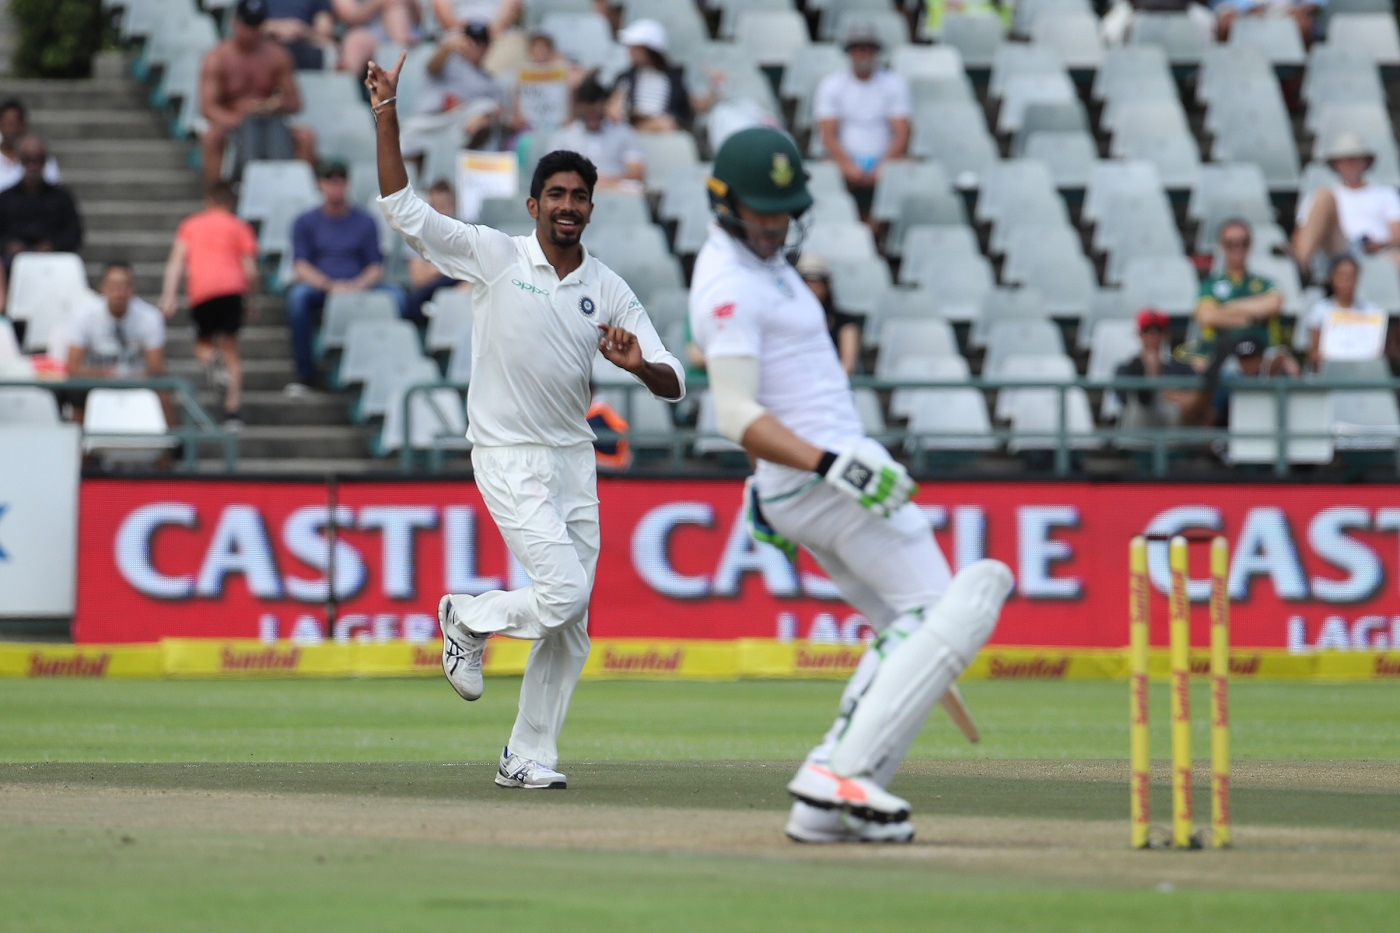 Jasprit Bumra of India celebrates the the wicket of Faf du Plessis(c) of South Africa